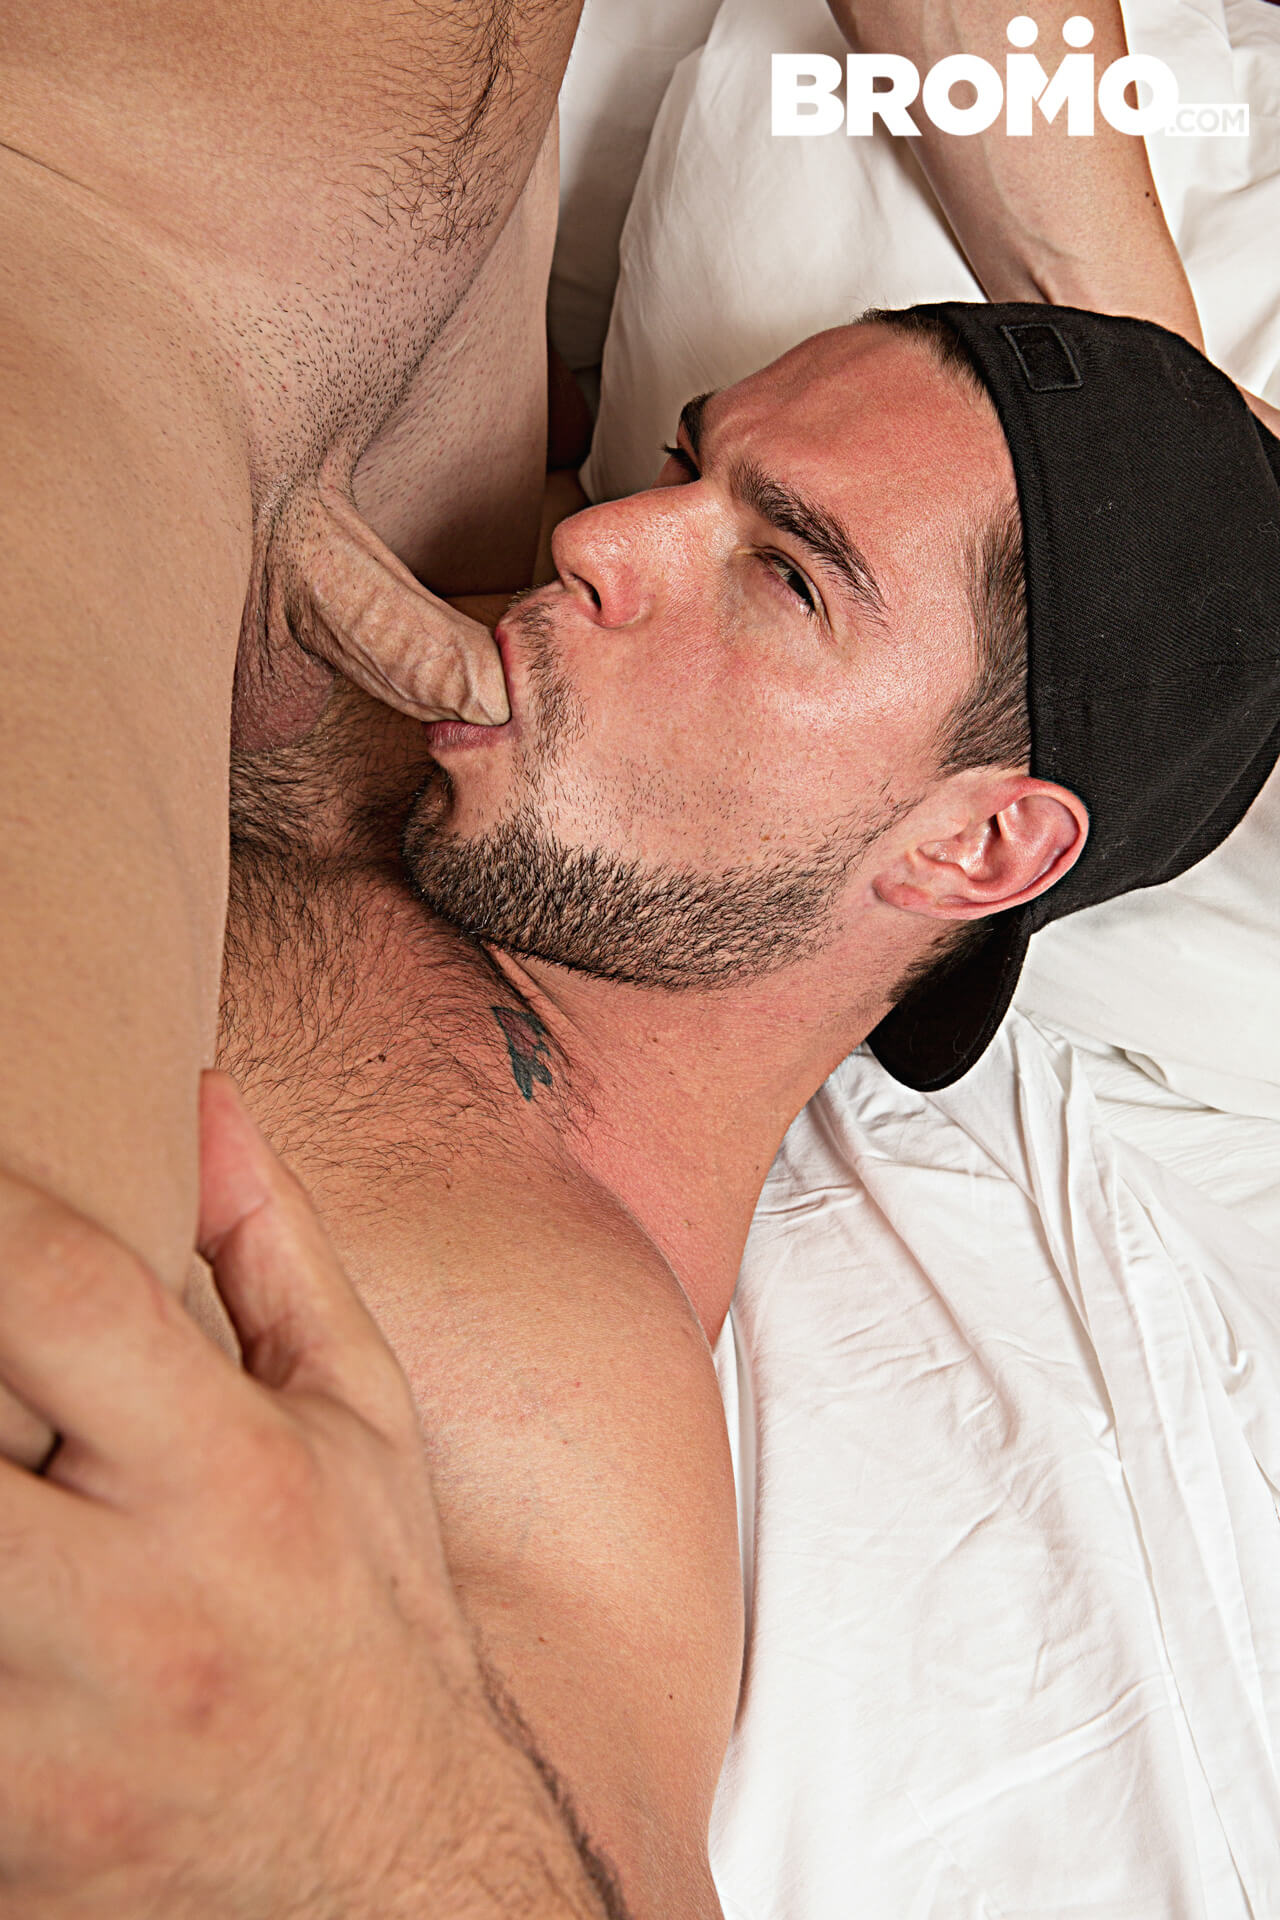 bromo str8 bitch part 2 aspen tobias gay porn blog image 7